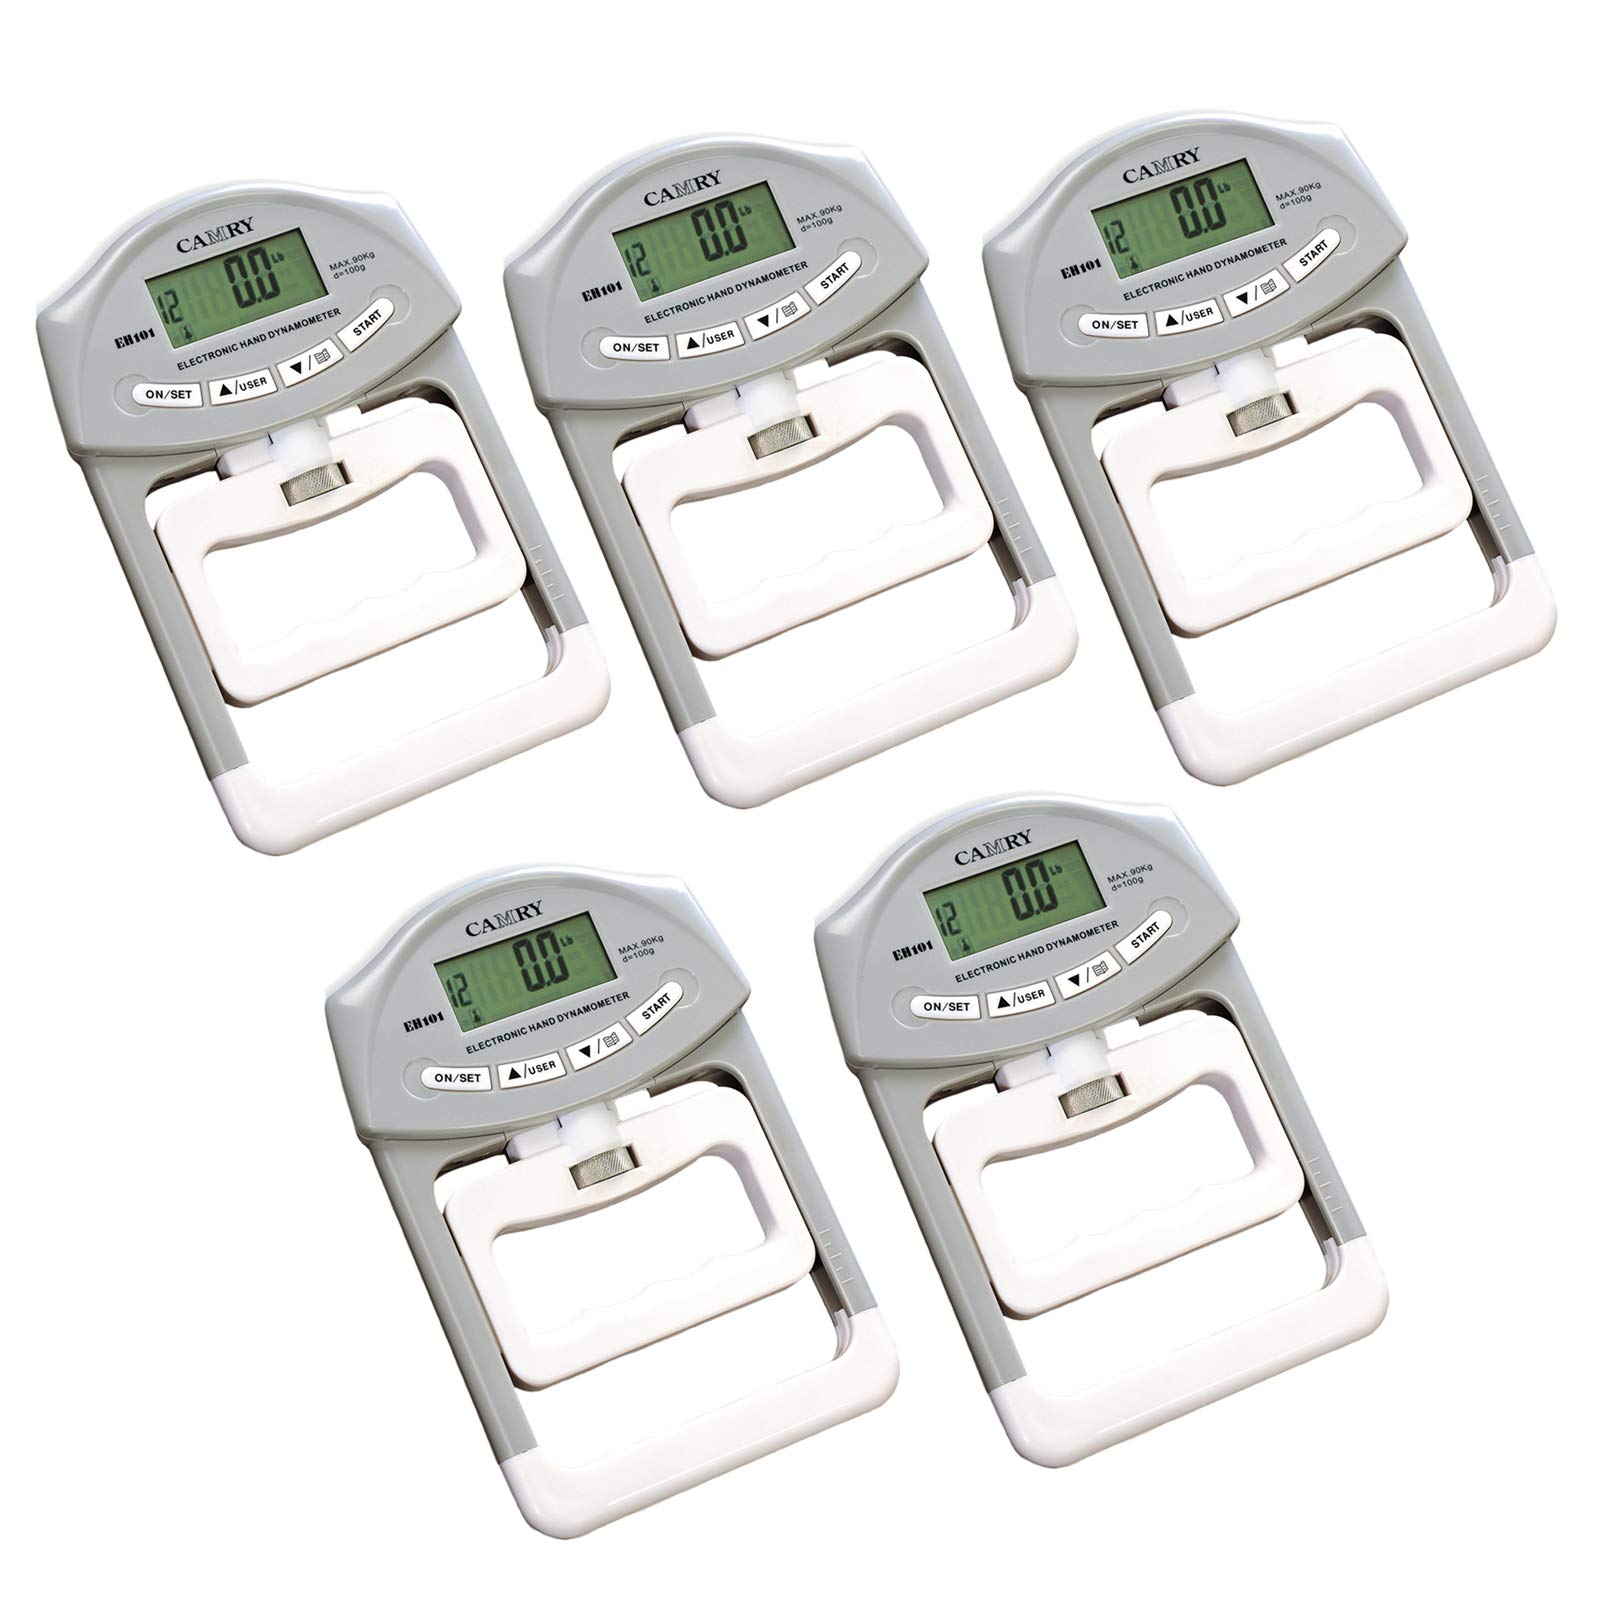 CAMRY Digital Hand Dynamometer Grip Strength Measurement Meter Auto Capturing Hand Grip Power 200 Lbs/90 Kgs - 5 Pcs